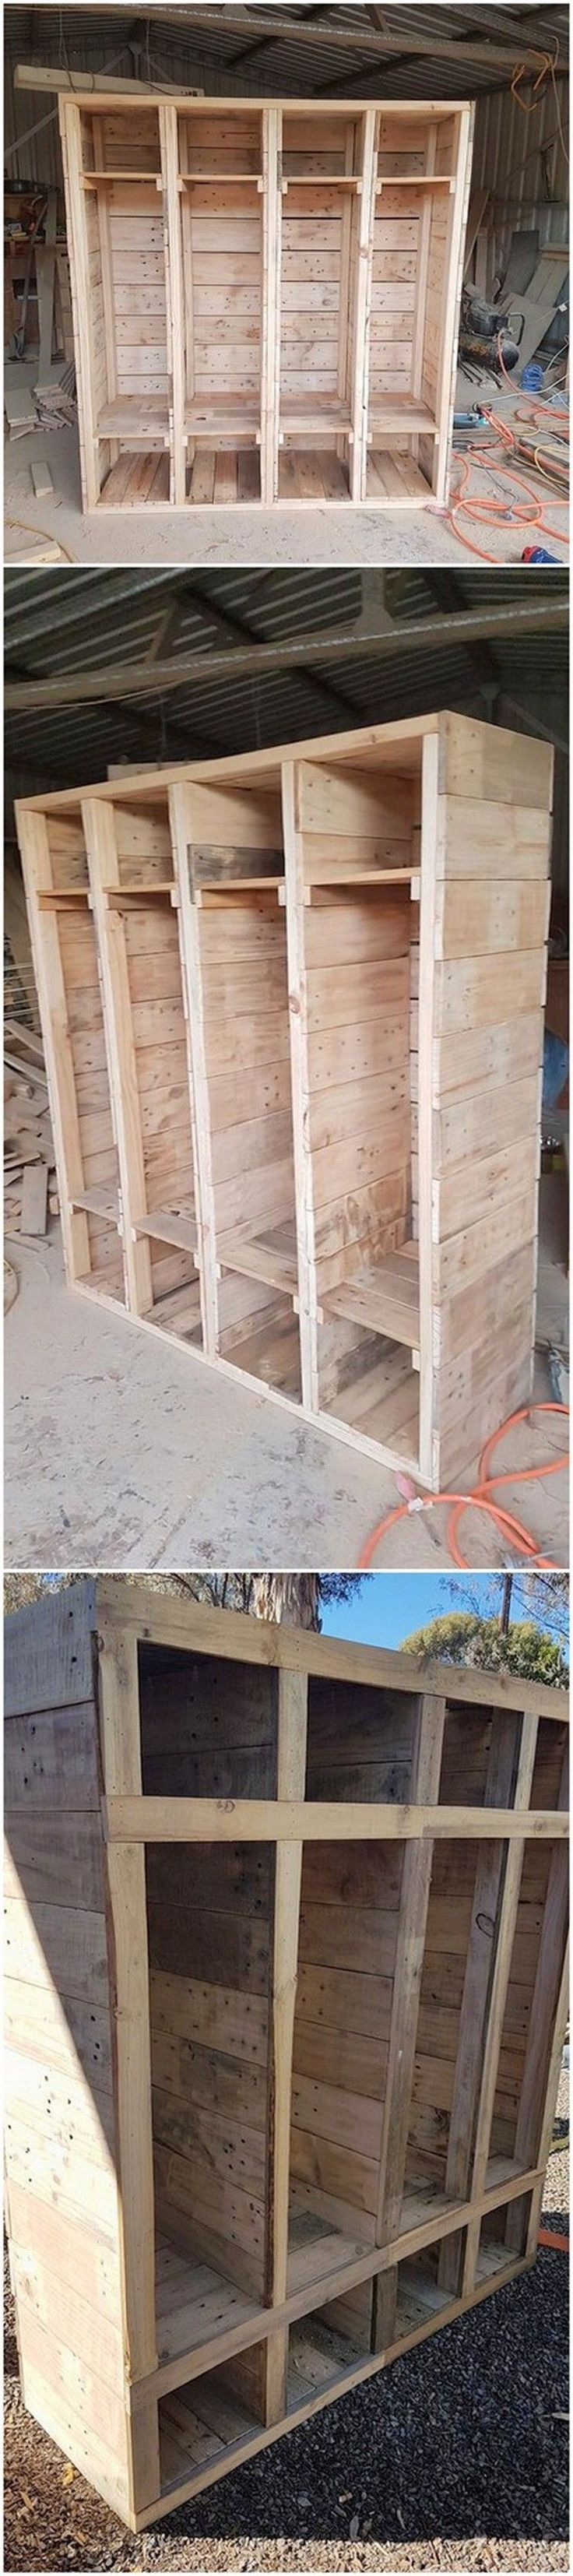 In almost all the houses you will probably encounter the wood pallet shelving cabinet structure. Do you wish to have the same in your house as well? To get a certain idea about it, here we will introduce an awe-inspiring design of wood pallet shelving unit. Numerous equal divisions of shelves are being highlighted into it.